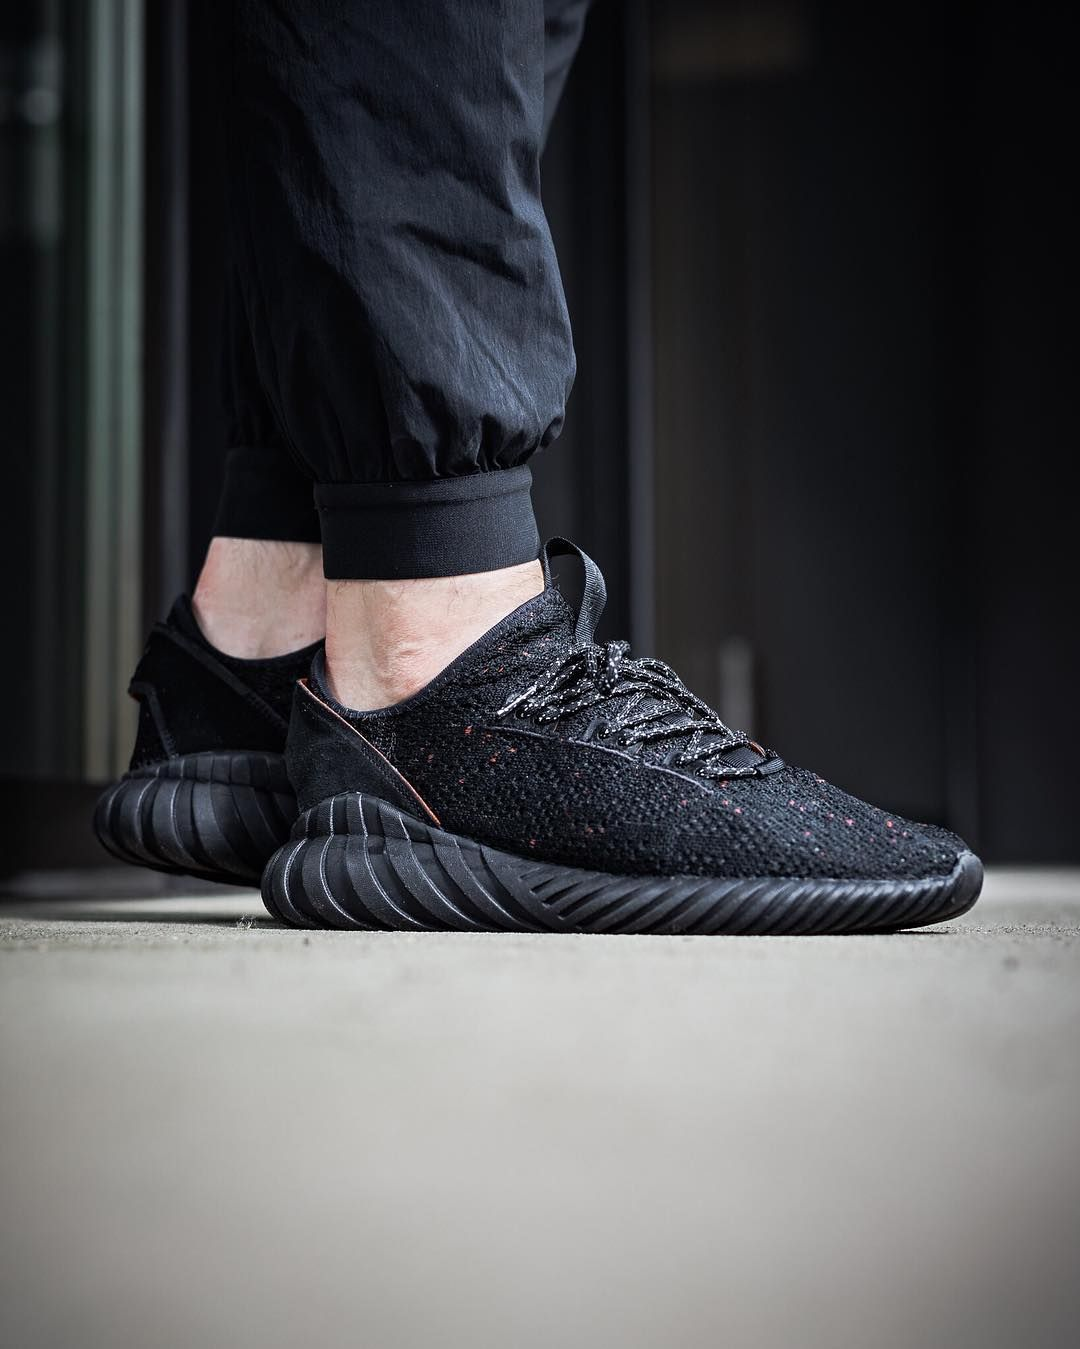 finest selection d1b01 6686a adidas Tubular Doom Sock Primeknit